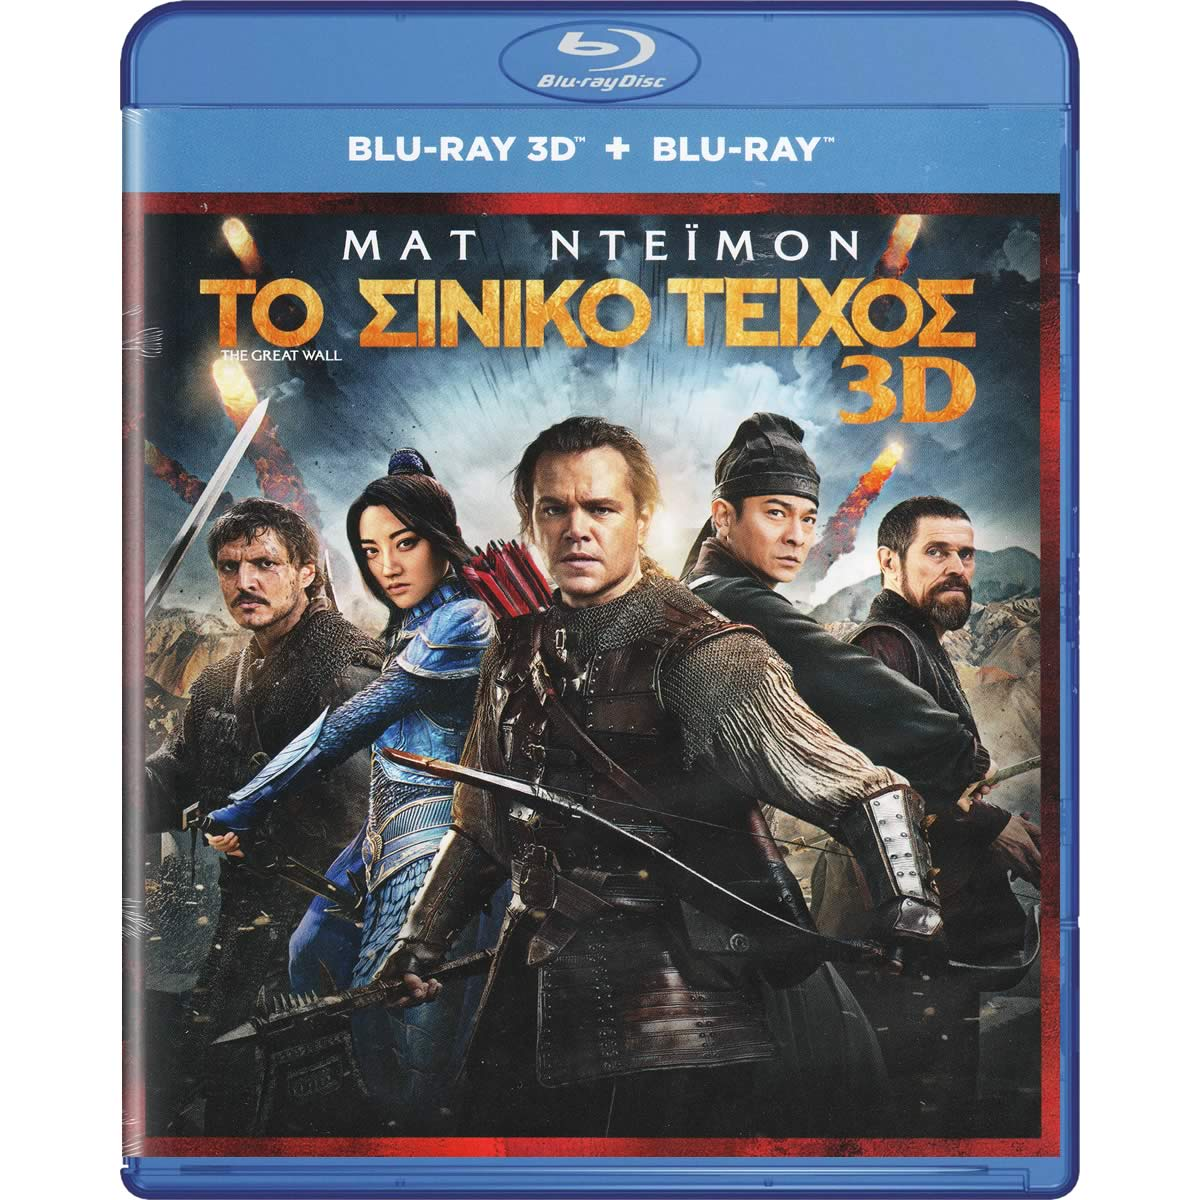 THE GREAT WALL 3D (BLU-RAY 3D + BLU-RAY)